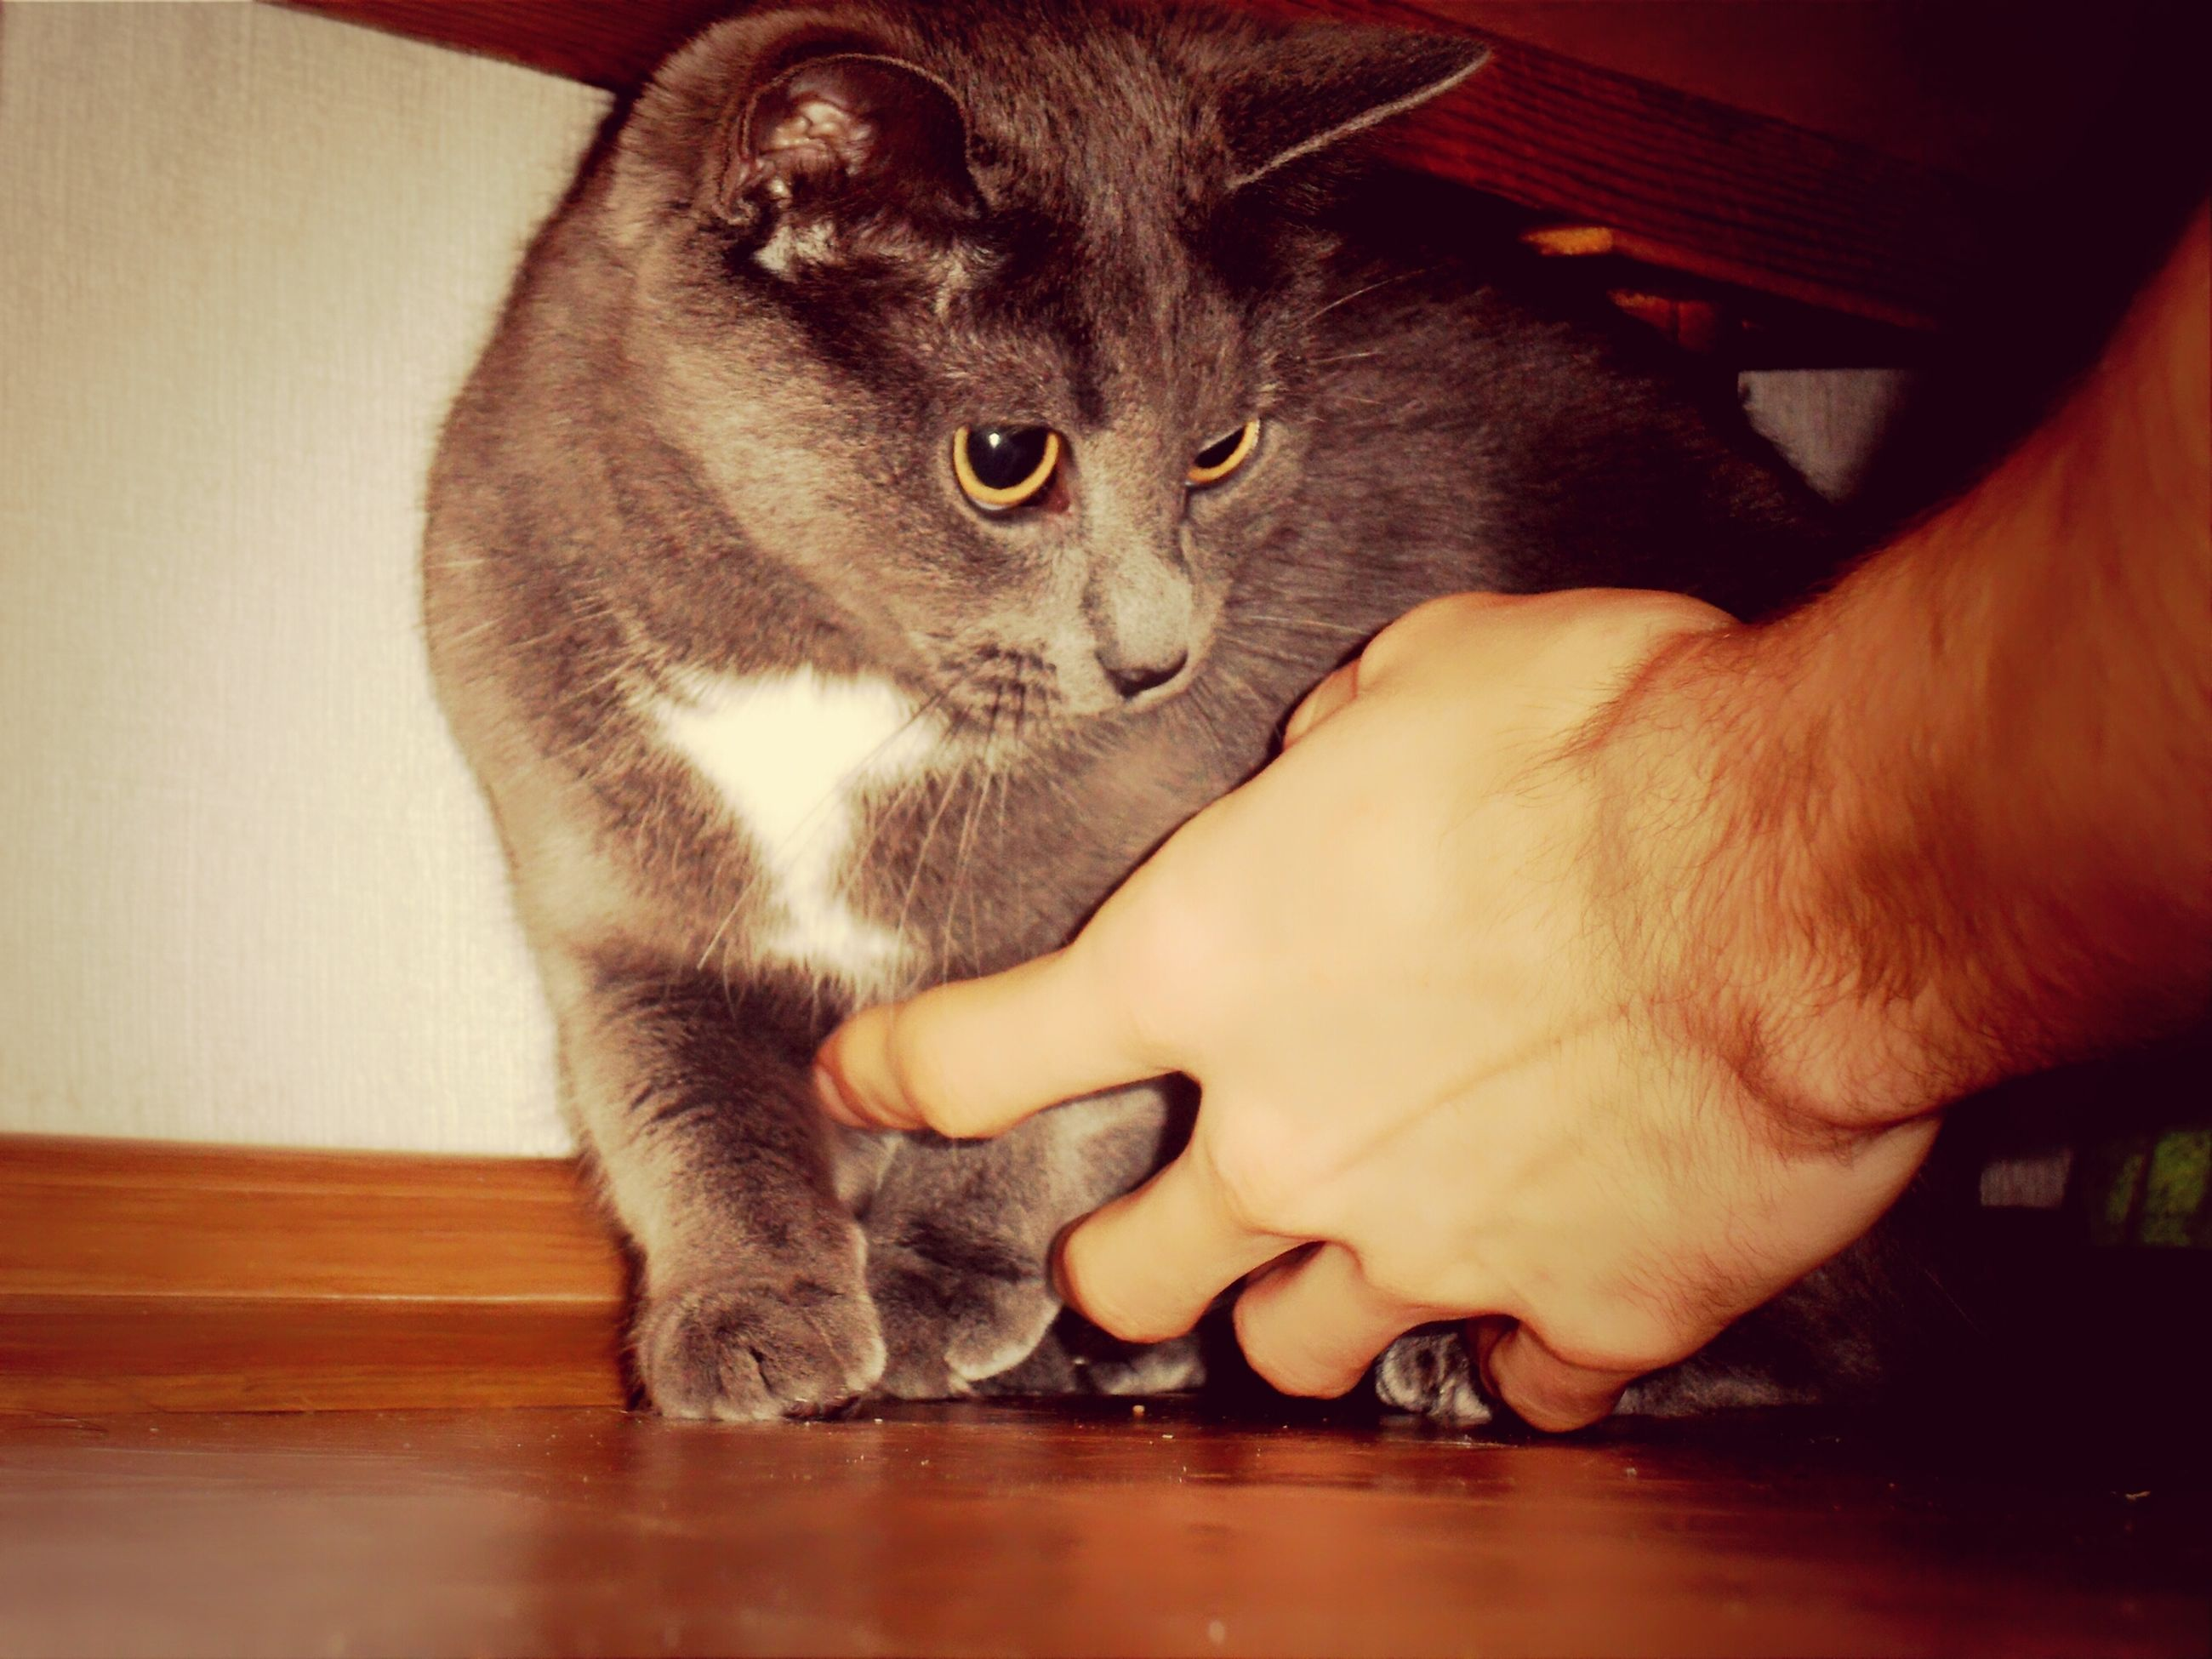 pets, domestic animals, indoors, domestic cat, one animal, animal themes, mammal, person, cat, feline, part of, whisker, holding, home interior, relaxation, human finger, unrecognizable person